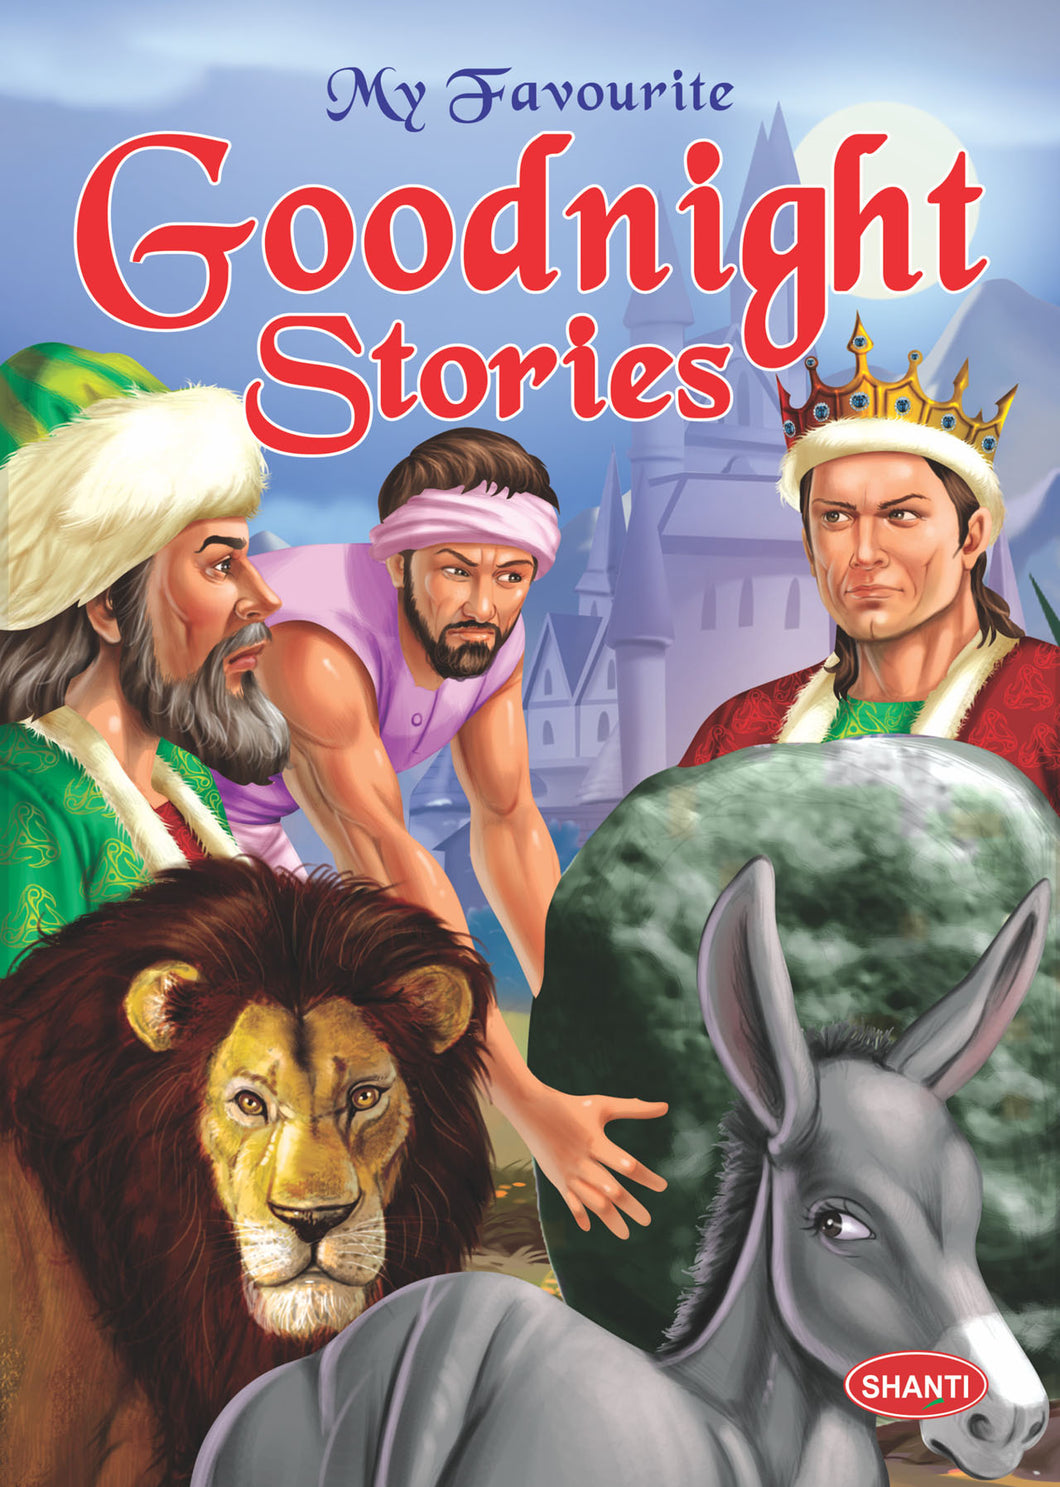 Story Book for Kids-My Favorite Goodnight Stories (English)-4